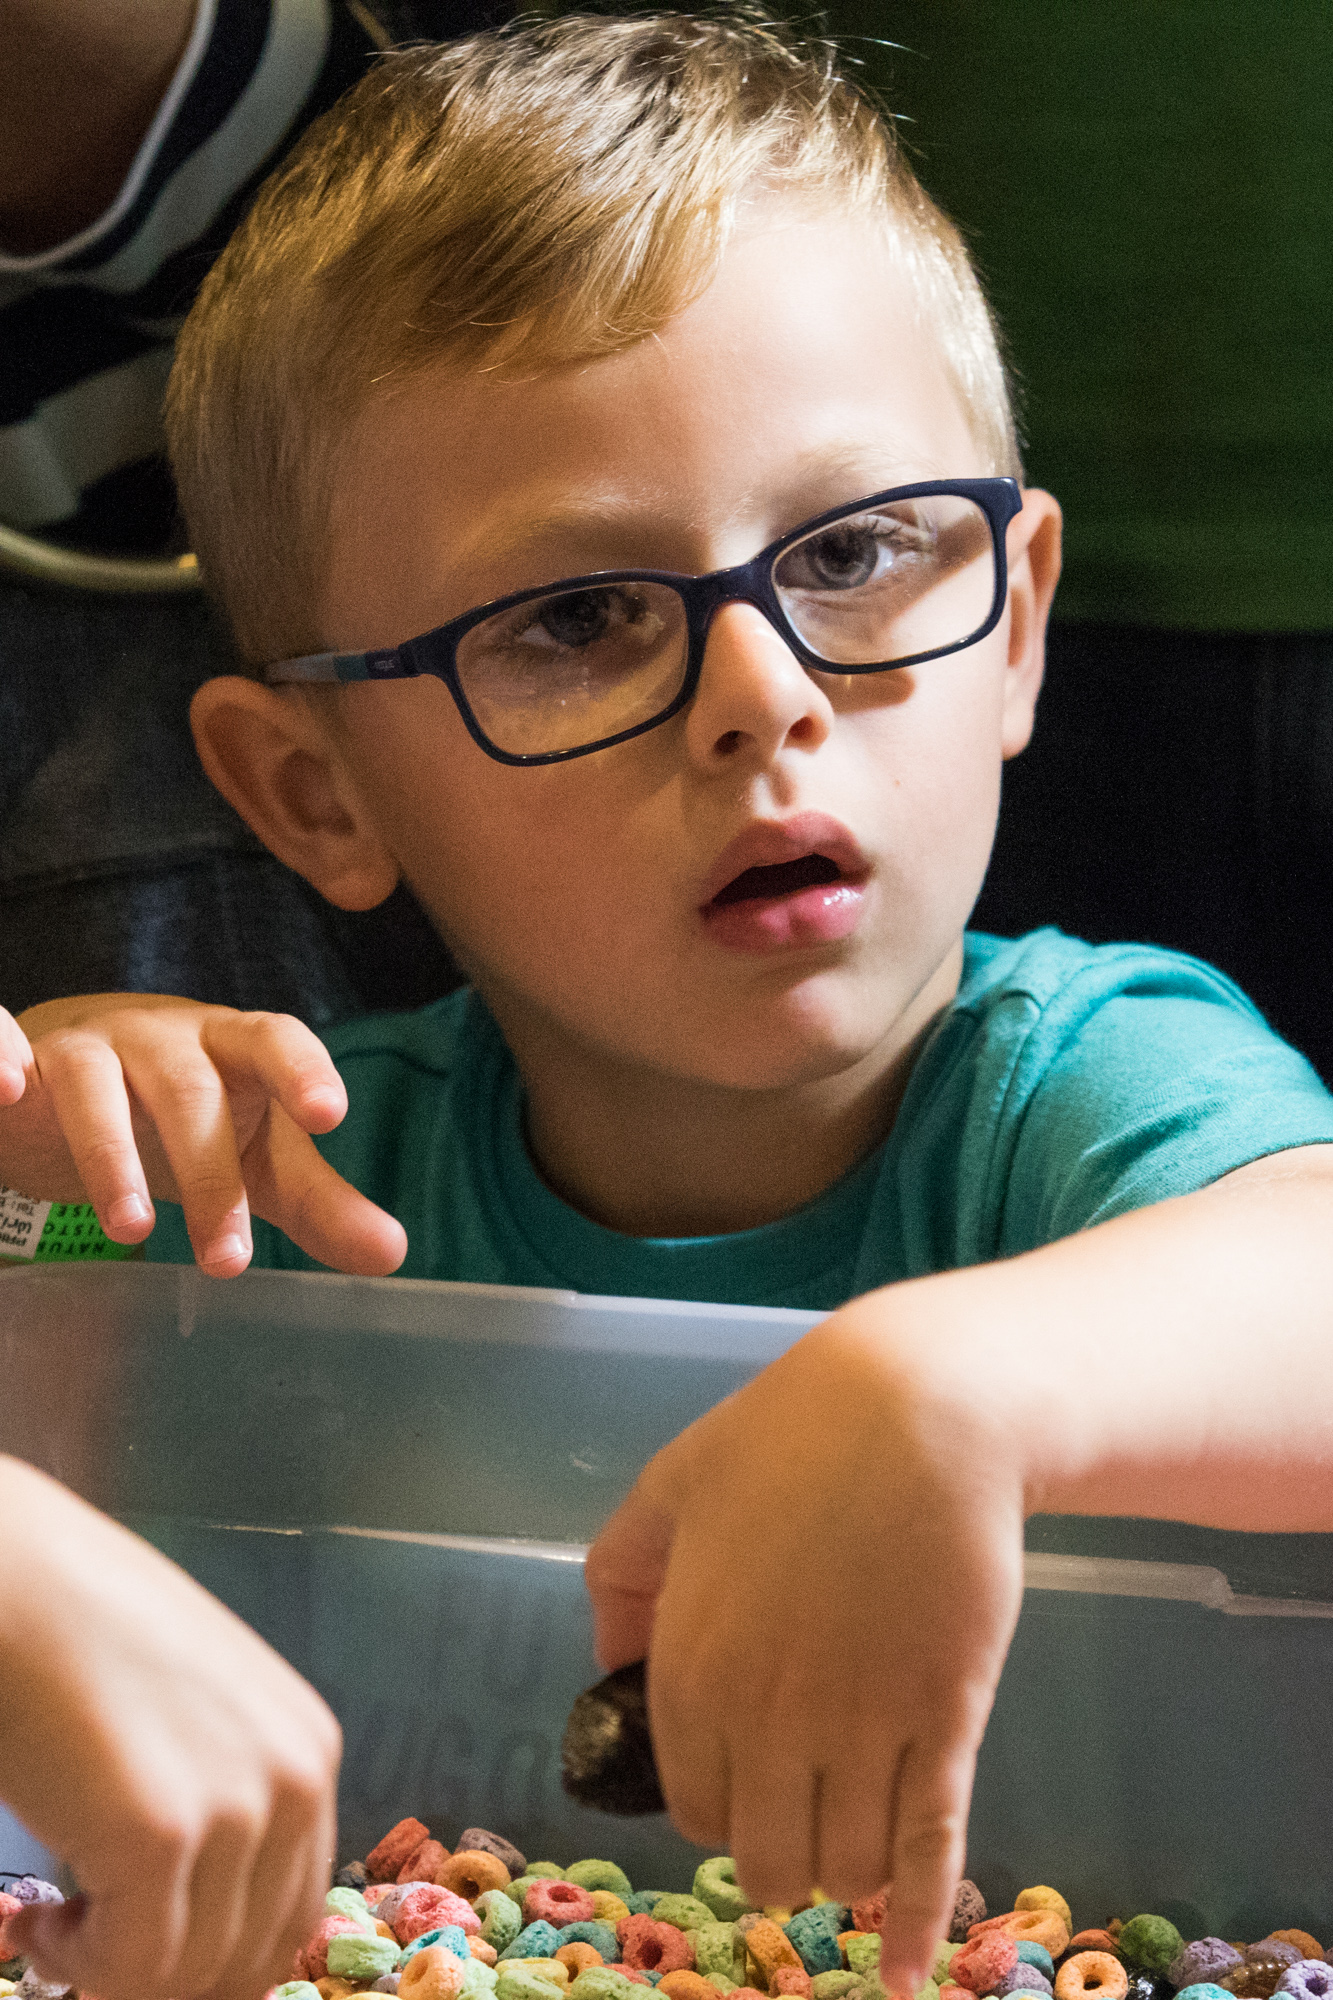 A young attendee of the Los Angeles Natural History Museums 32nd annual Bug Fair stares in awe as a Diana Terranova puts a tarantuala in her mouth and lets it crawl out of it at the Los Angeles Natural History Museums 32nd annual Bug Fair on May 19, 2018. (Zane Meyer-Thornton/Corsair Photo